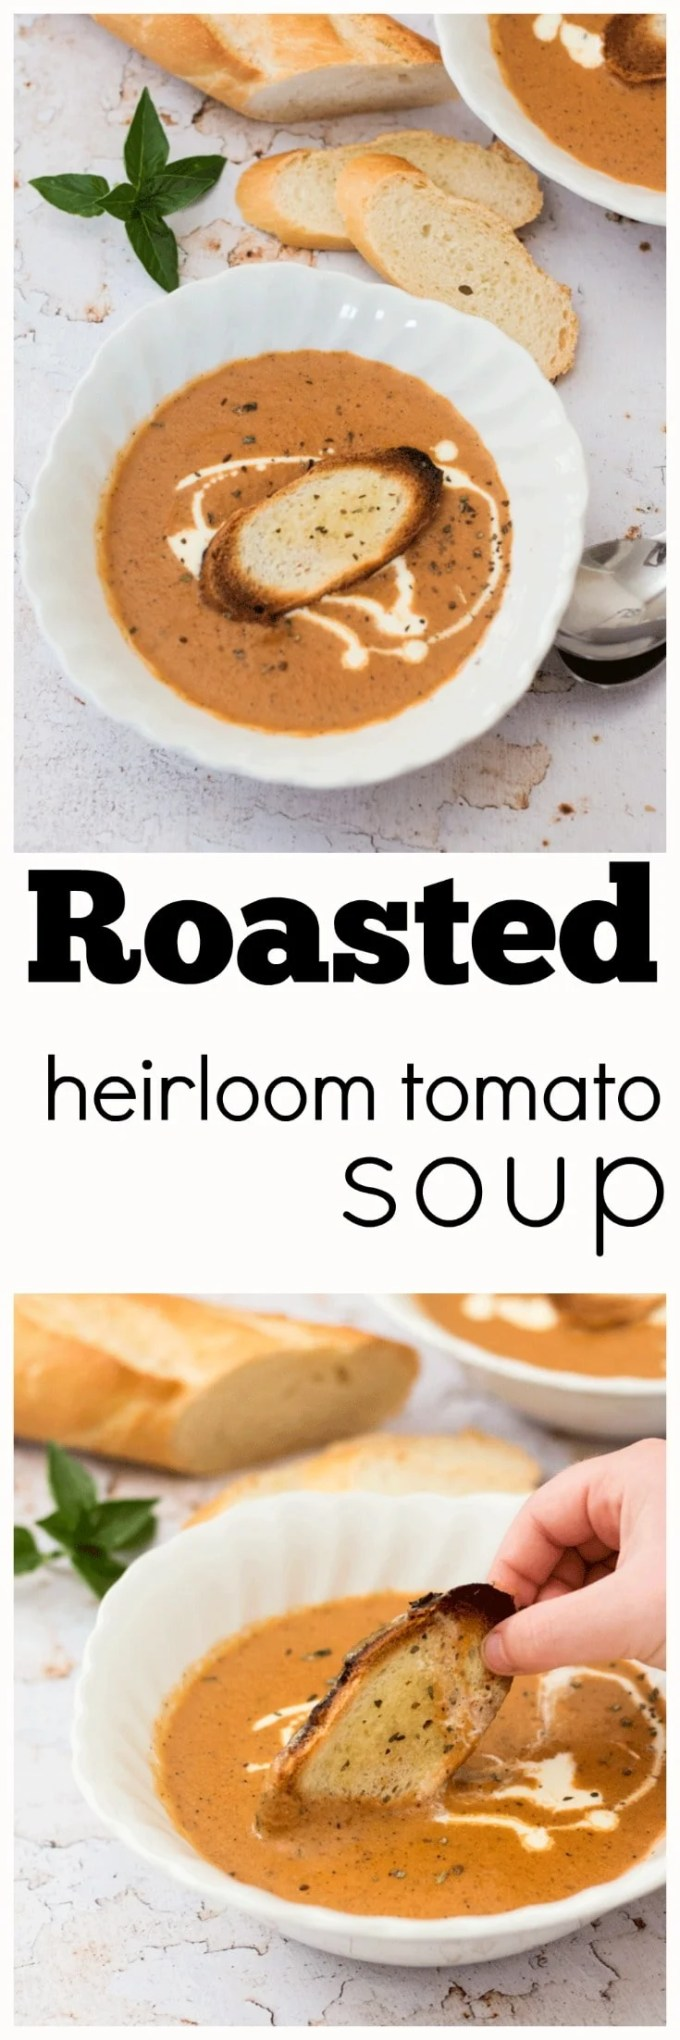 This is not your mama's canned tomato soup. This CreamyHeirloom Tomato Soup is on a completely different level and you will never ever go back. Use the best quality vine-ripened tomatoes you can find, heirlooms if they are available. And please please please don't cheat and use milk, the taste explosion just won't be the same.